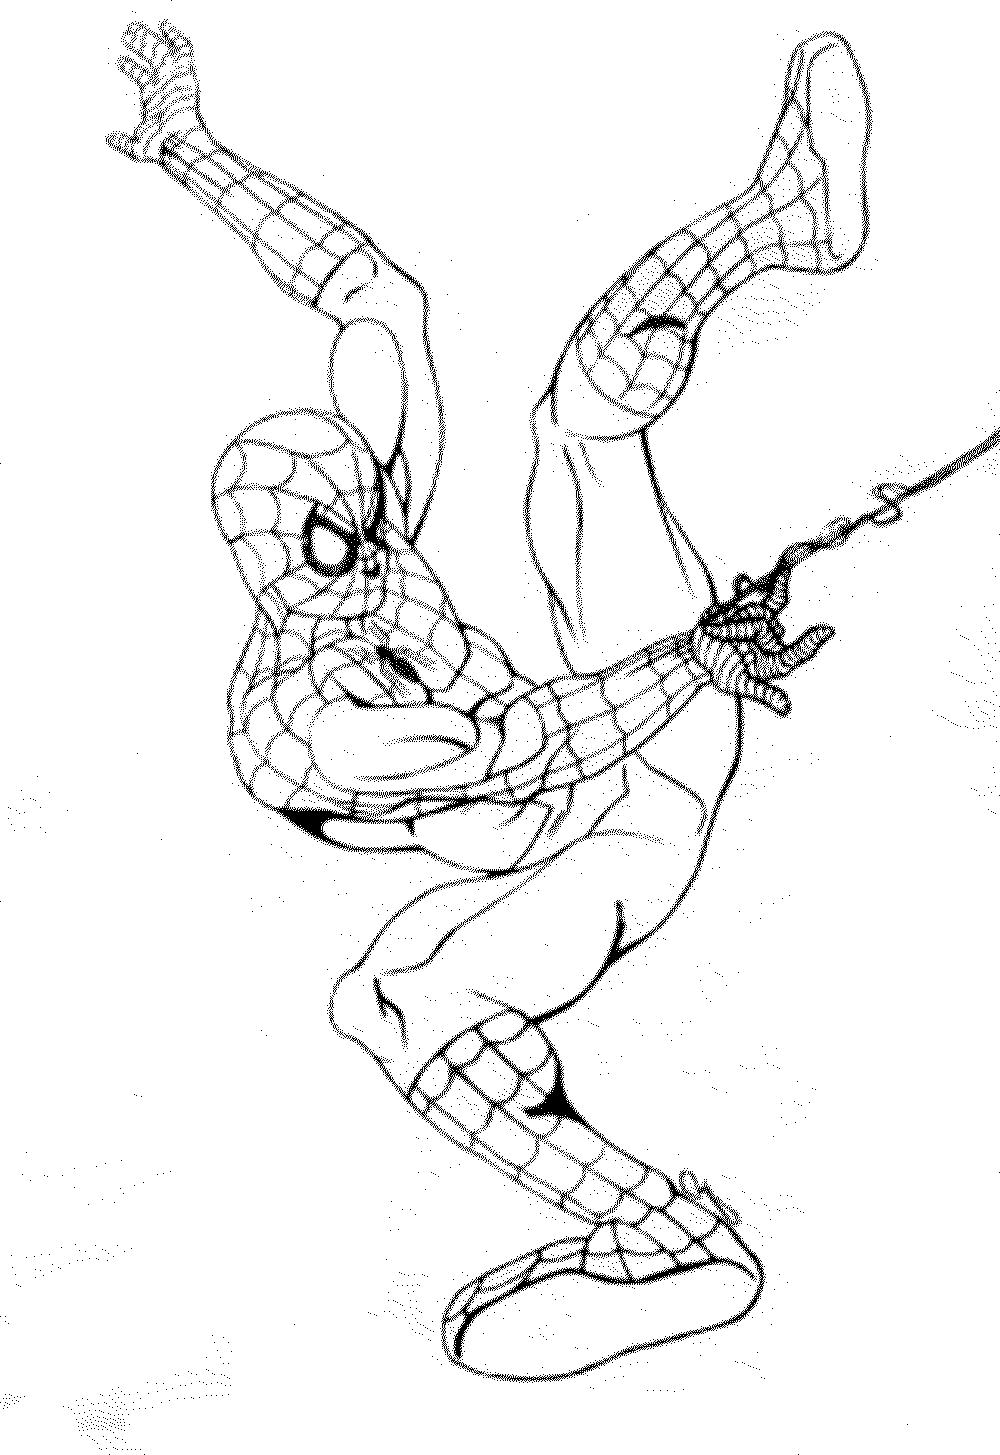 spiderman picture to color spiderman free to color for children spiderman kids to color picture spiderman